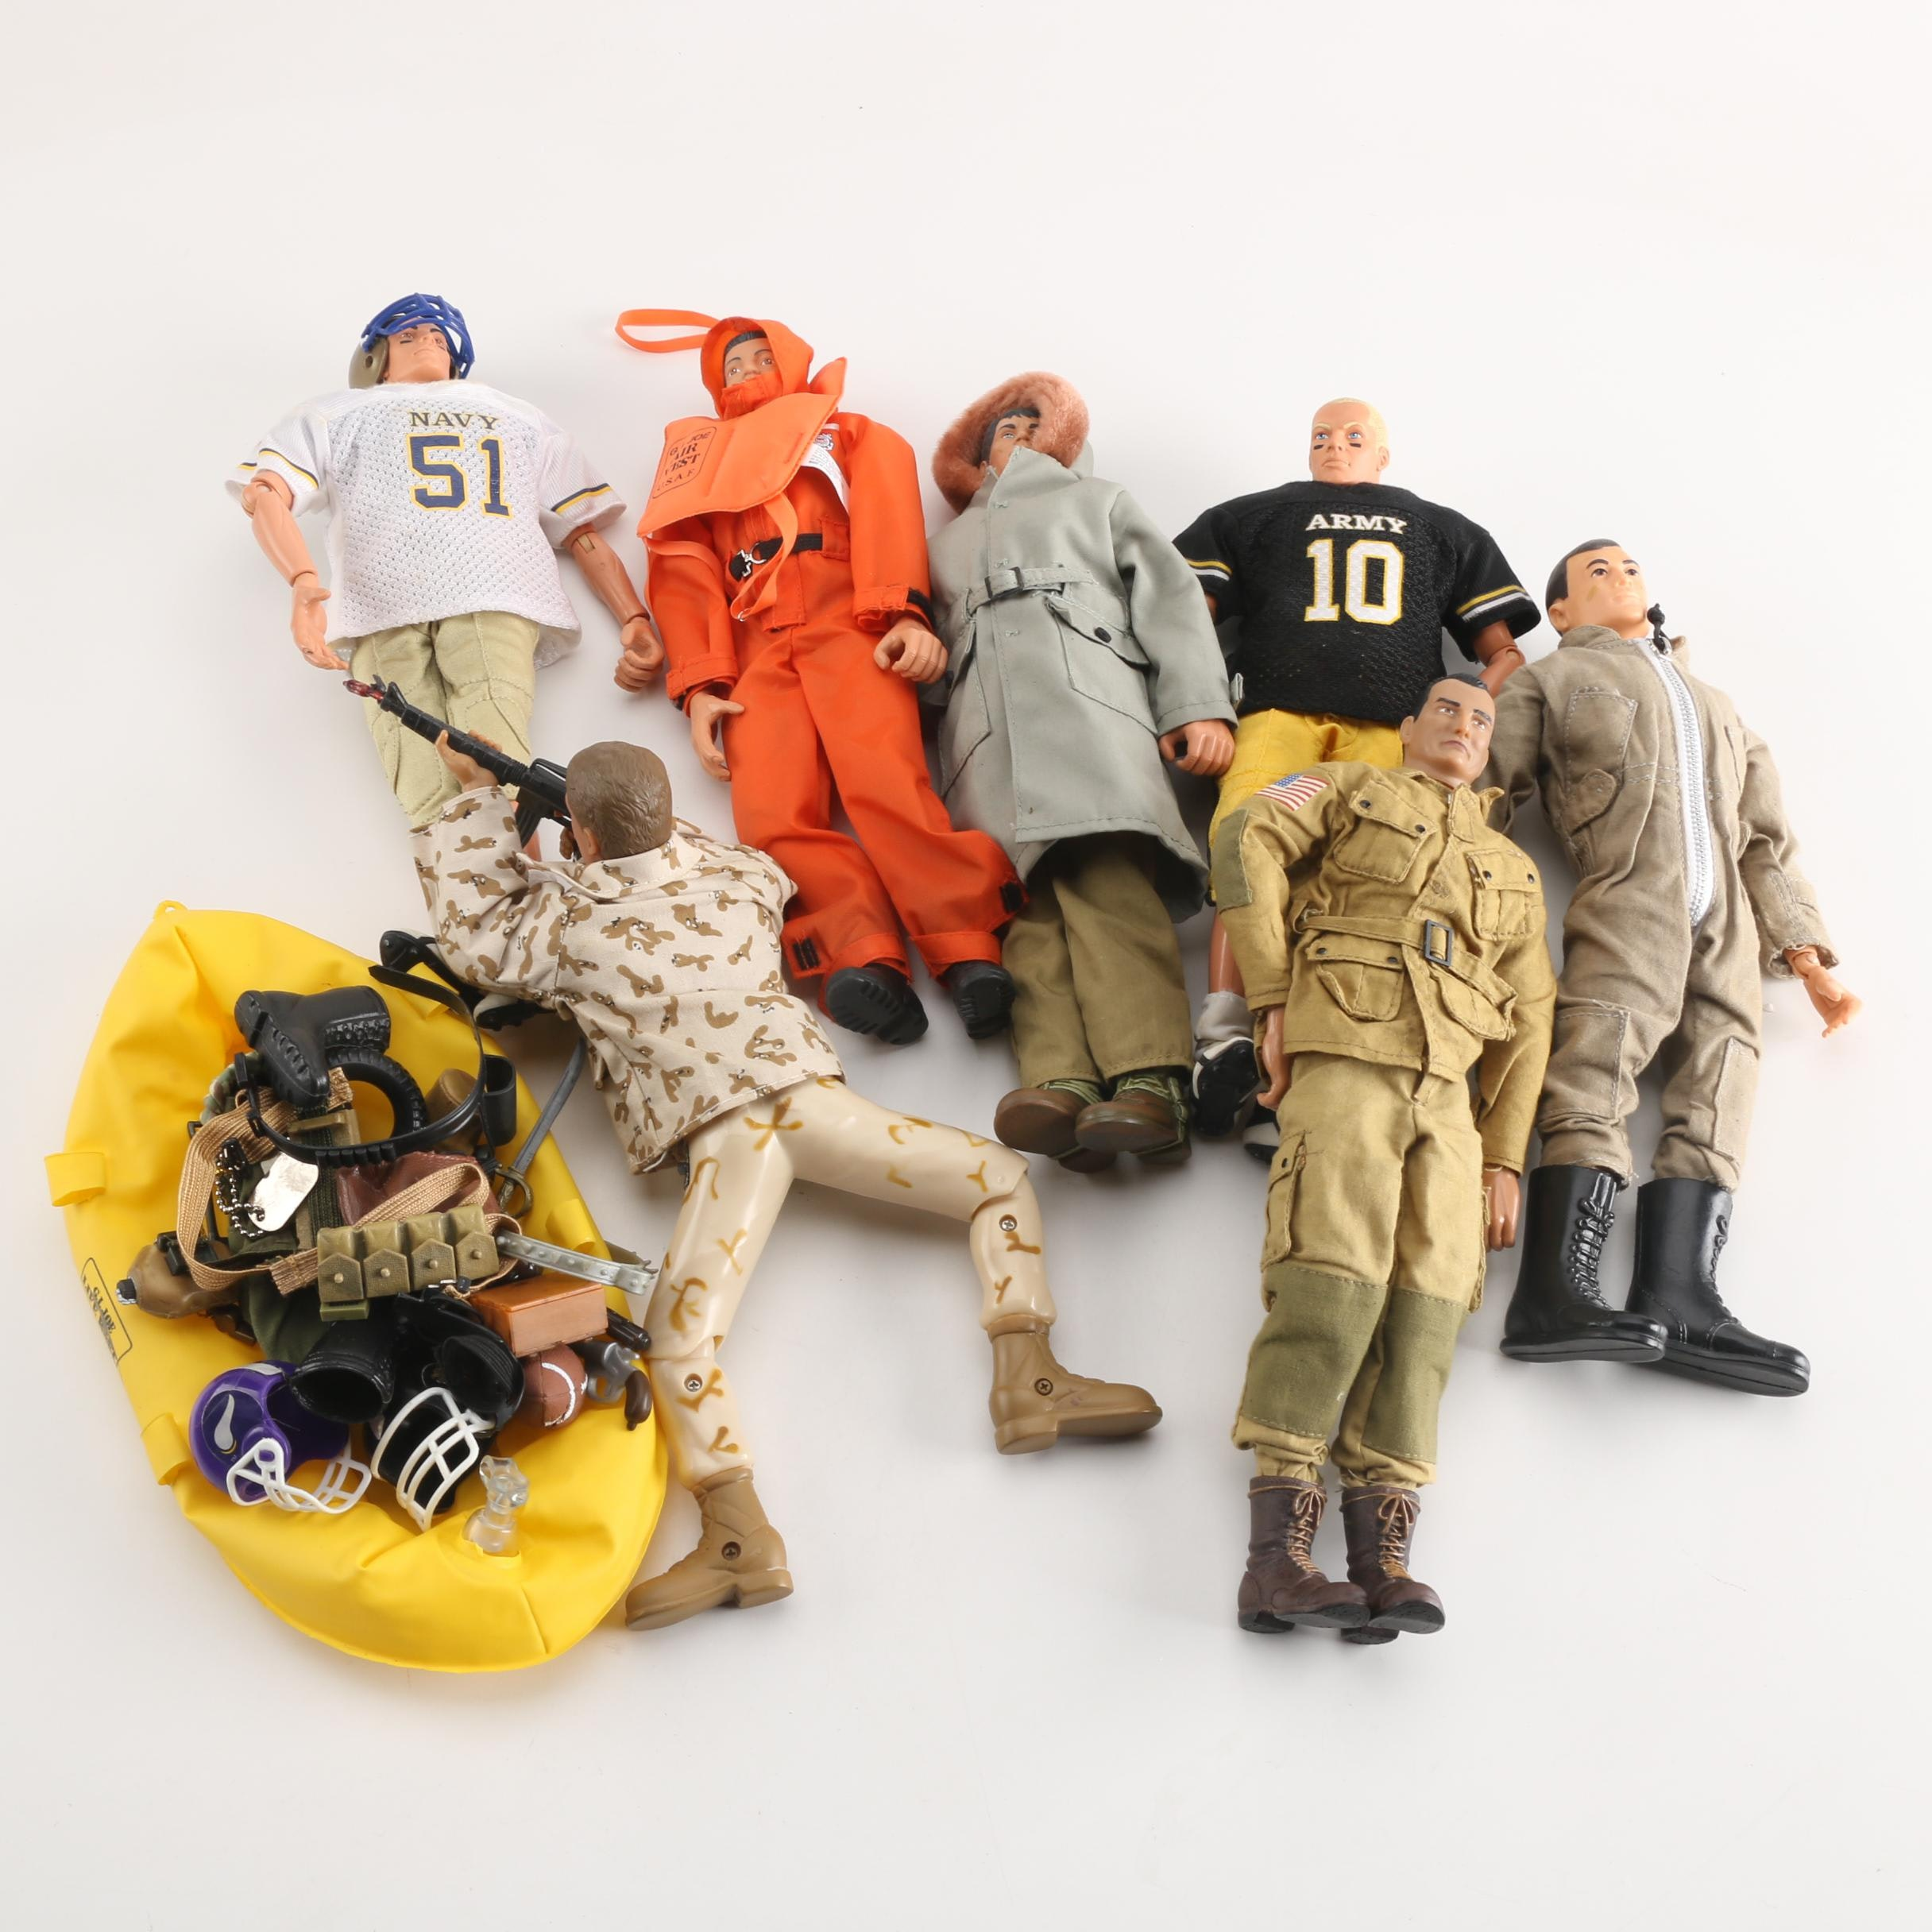 Assorted G.I. Joe Action Figures with Accessories